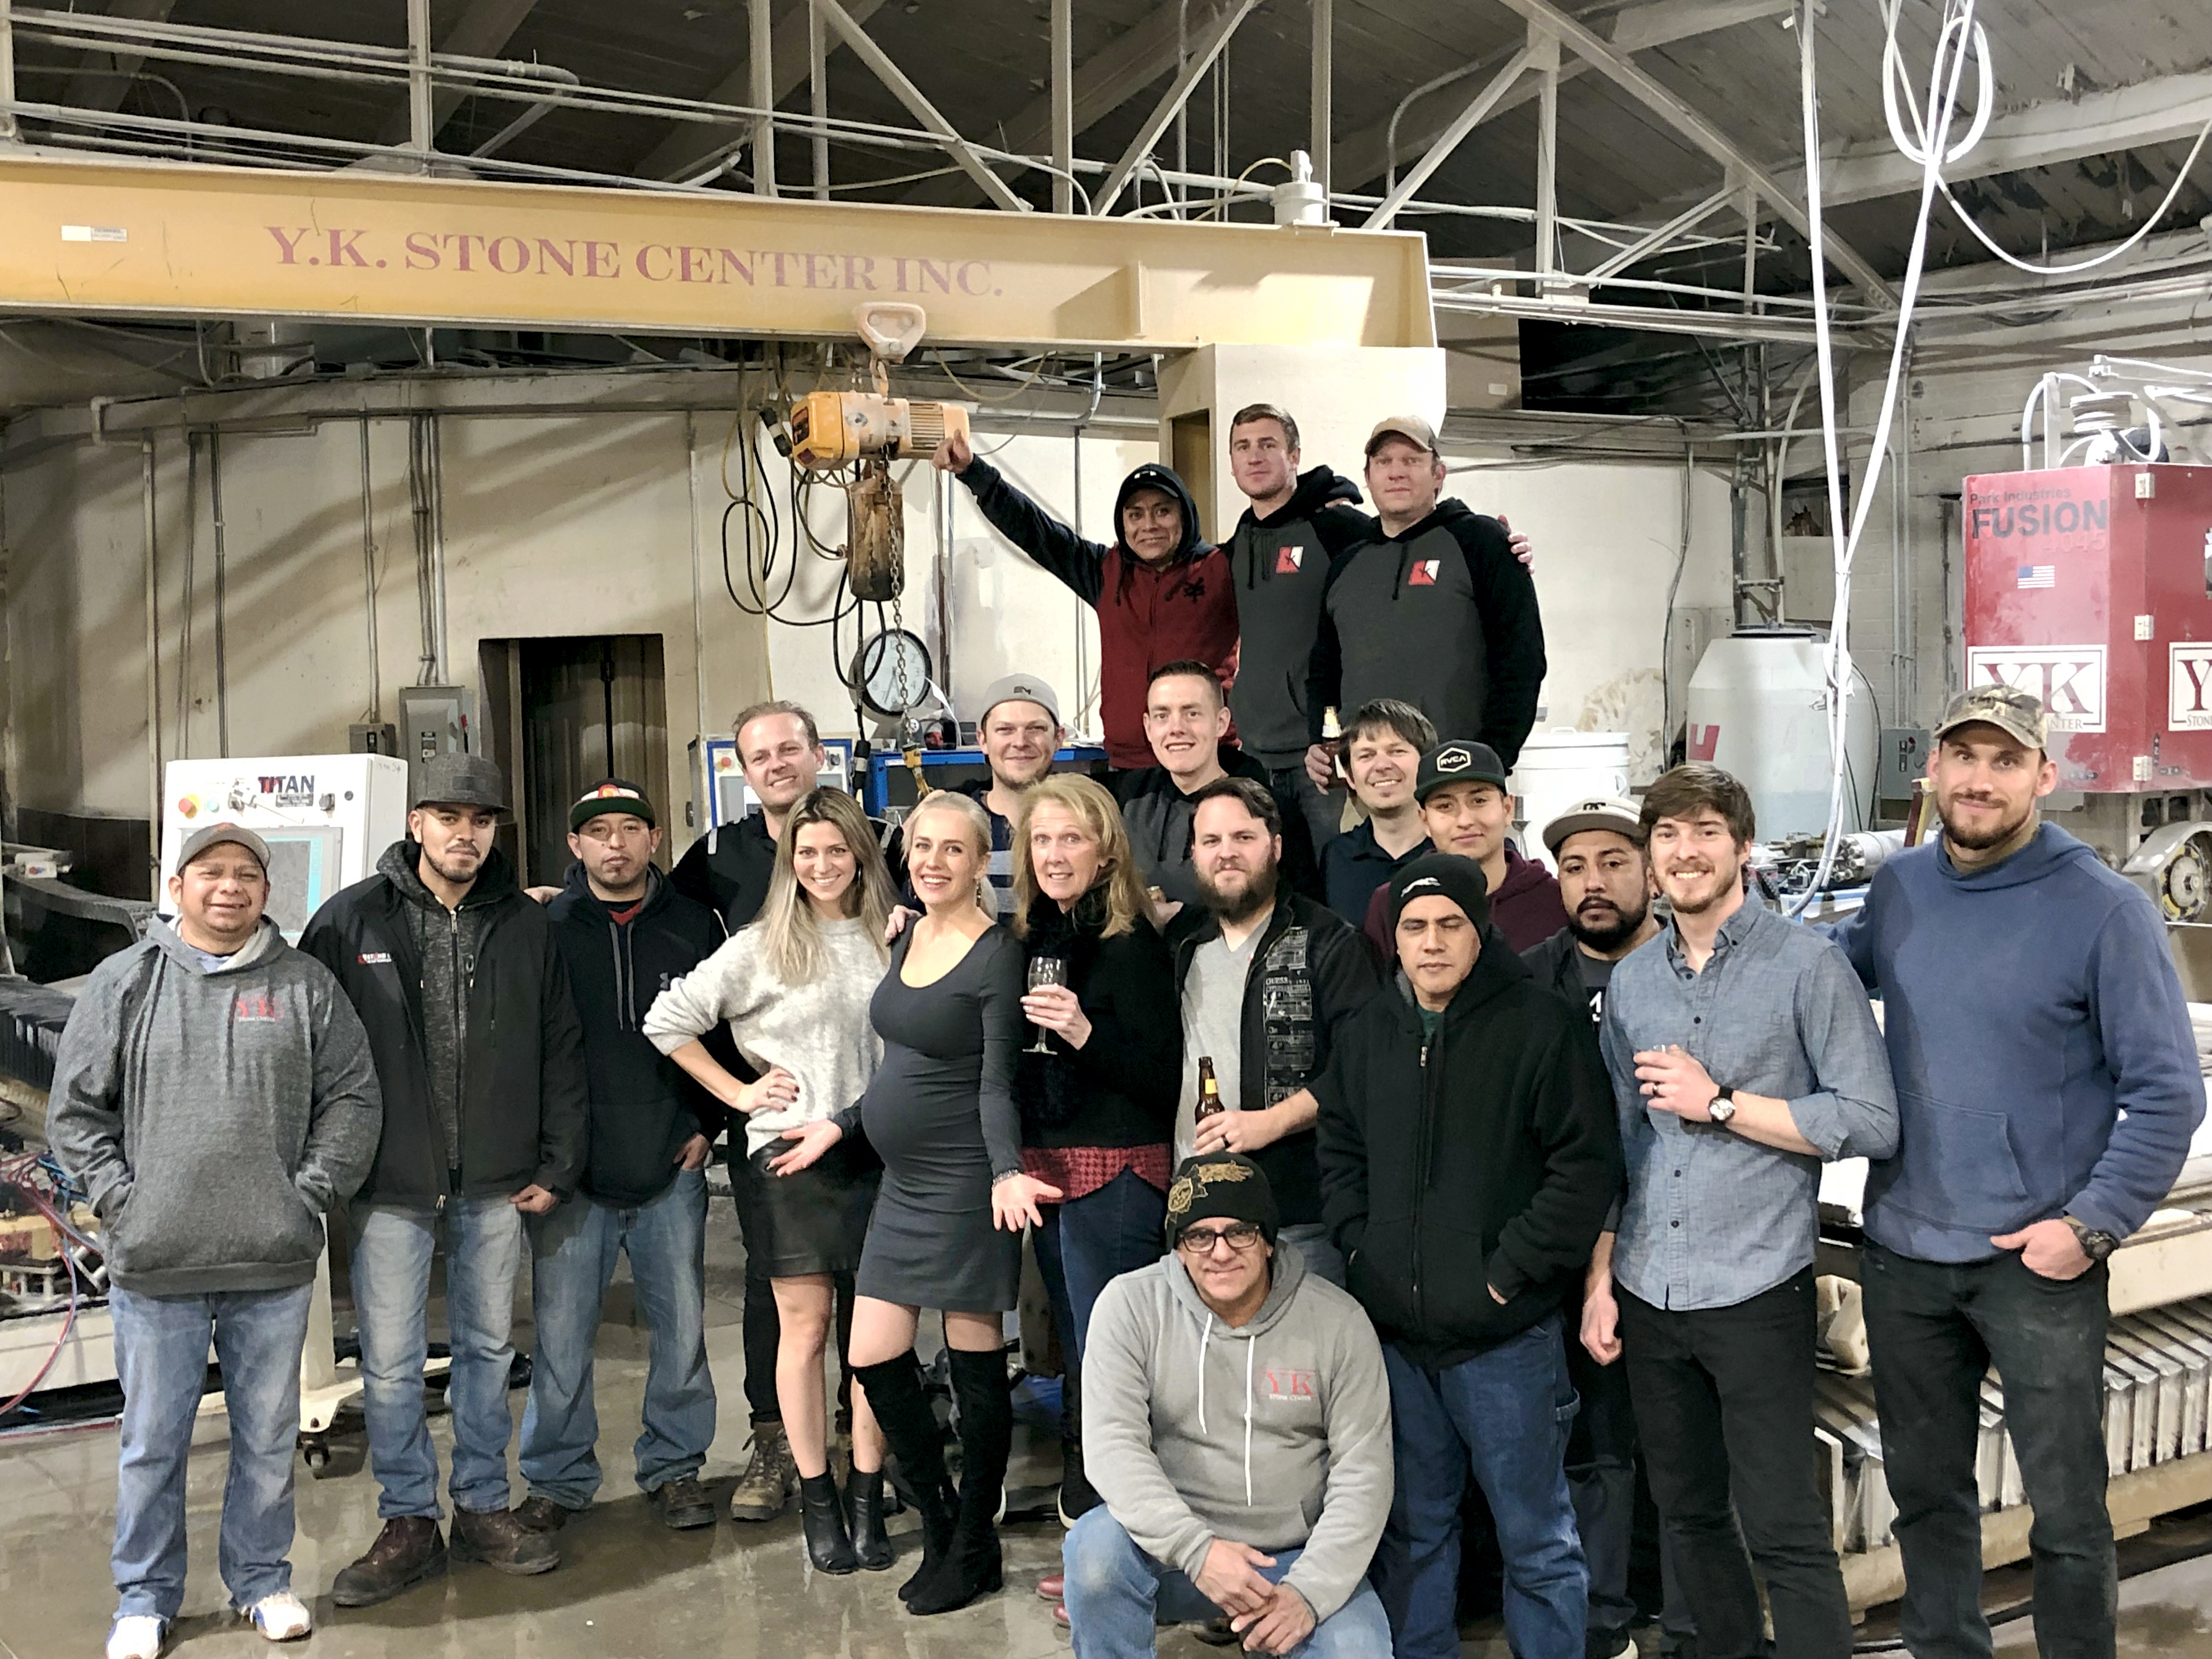 YK Stone Center Shop Crew 2019. Fabrication shop